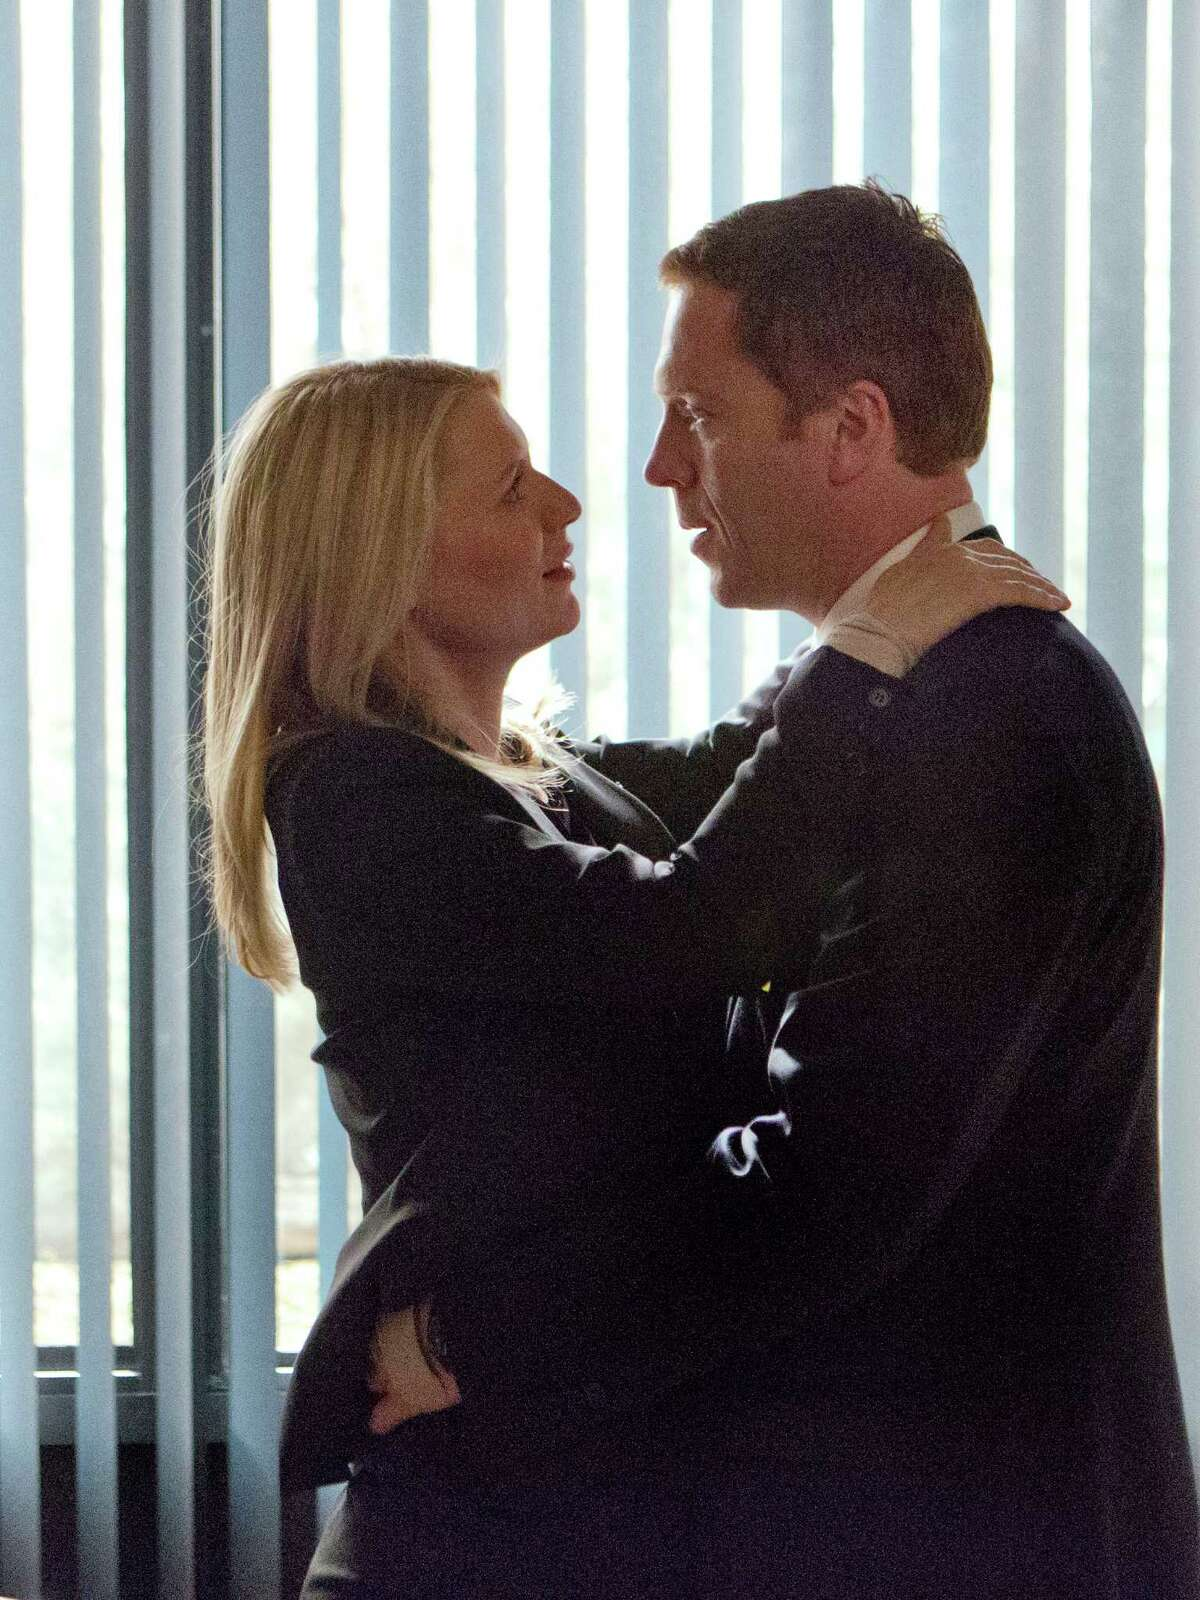 Claire Danes as Carrie Mathison and Damian Lewis as Nicholas Brody in Homeland (Season 2, Episode 12). - Photo: Kent Smith/SHOWTIME